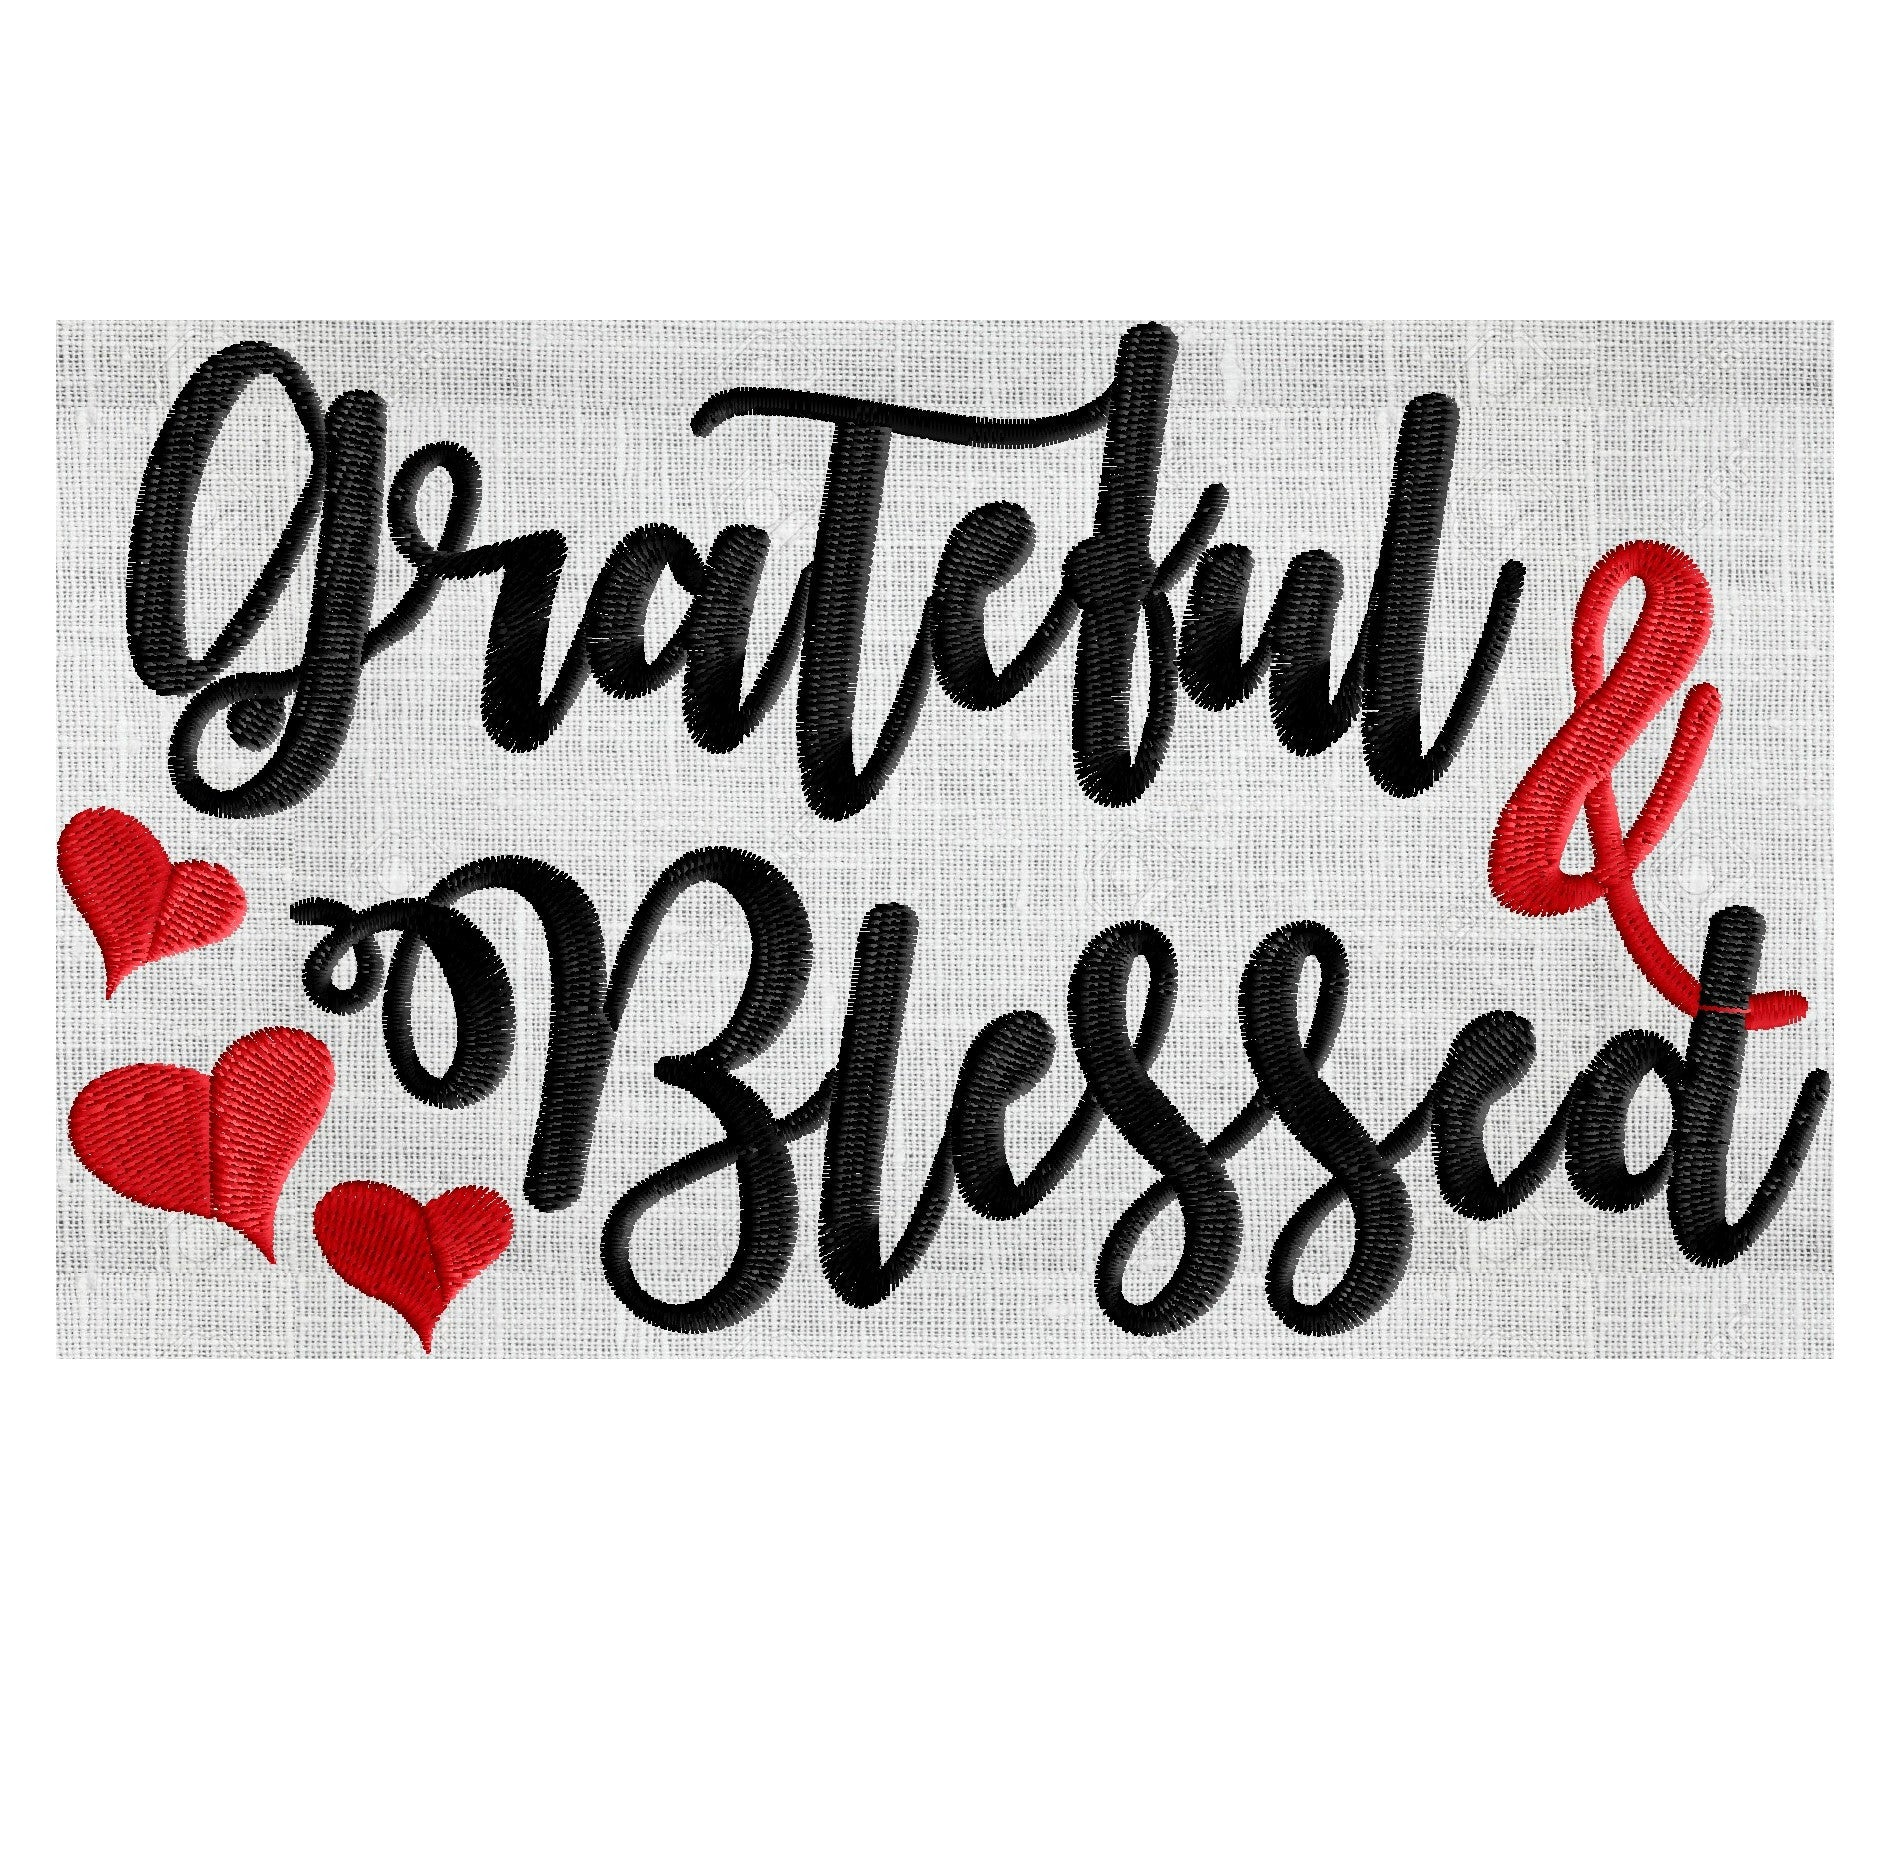 Grateful and Blessed quote - EMBROIDERY DESIGN FILE- Instant download - Exp  Hus Jef Vp3 Pes Dst formats in 2 sizes